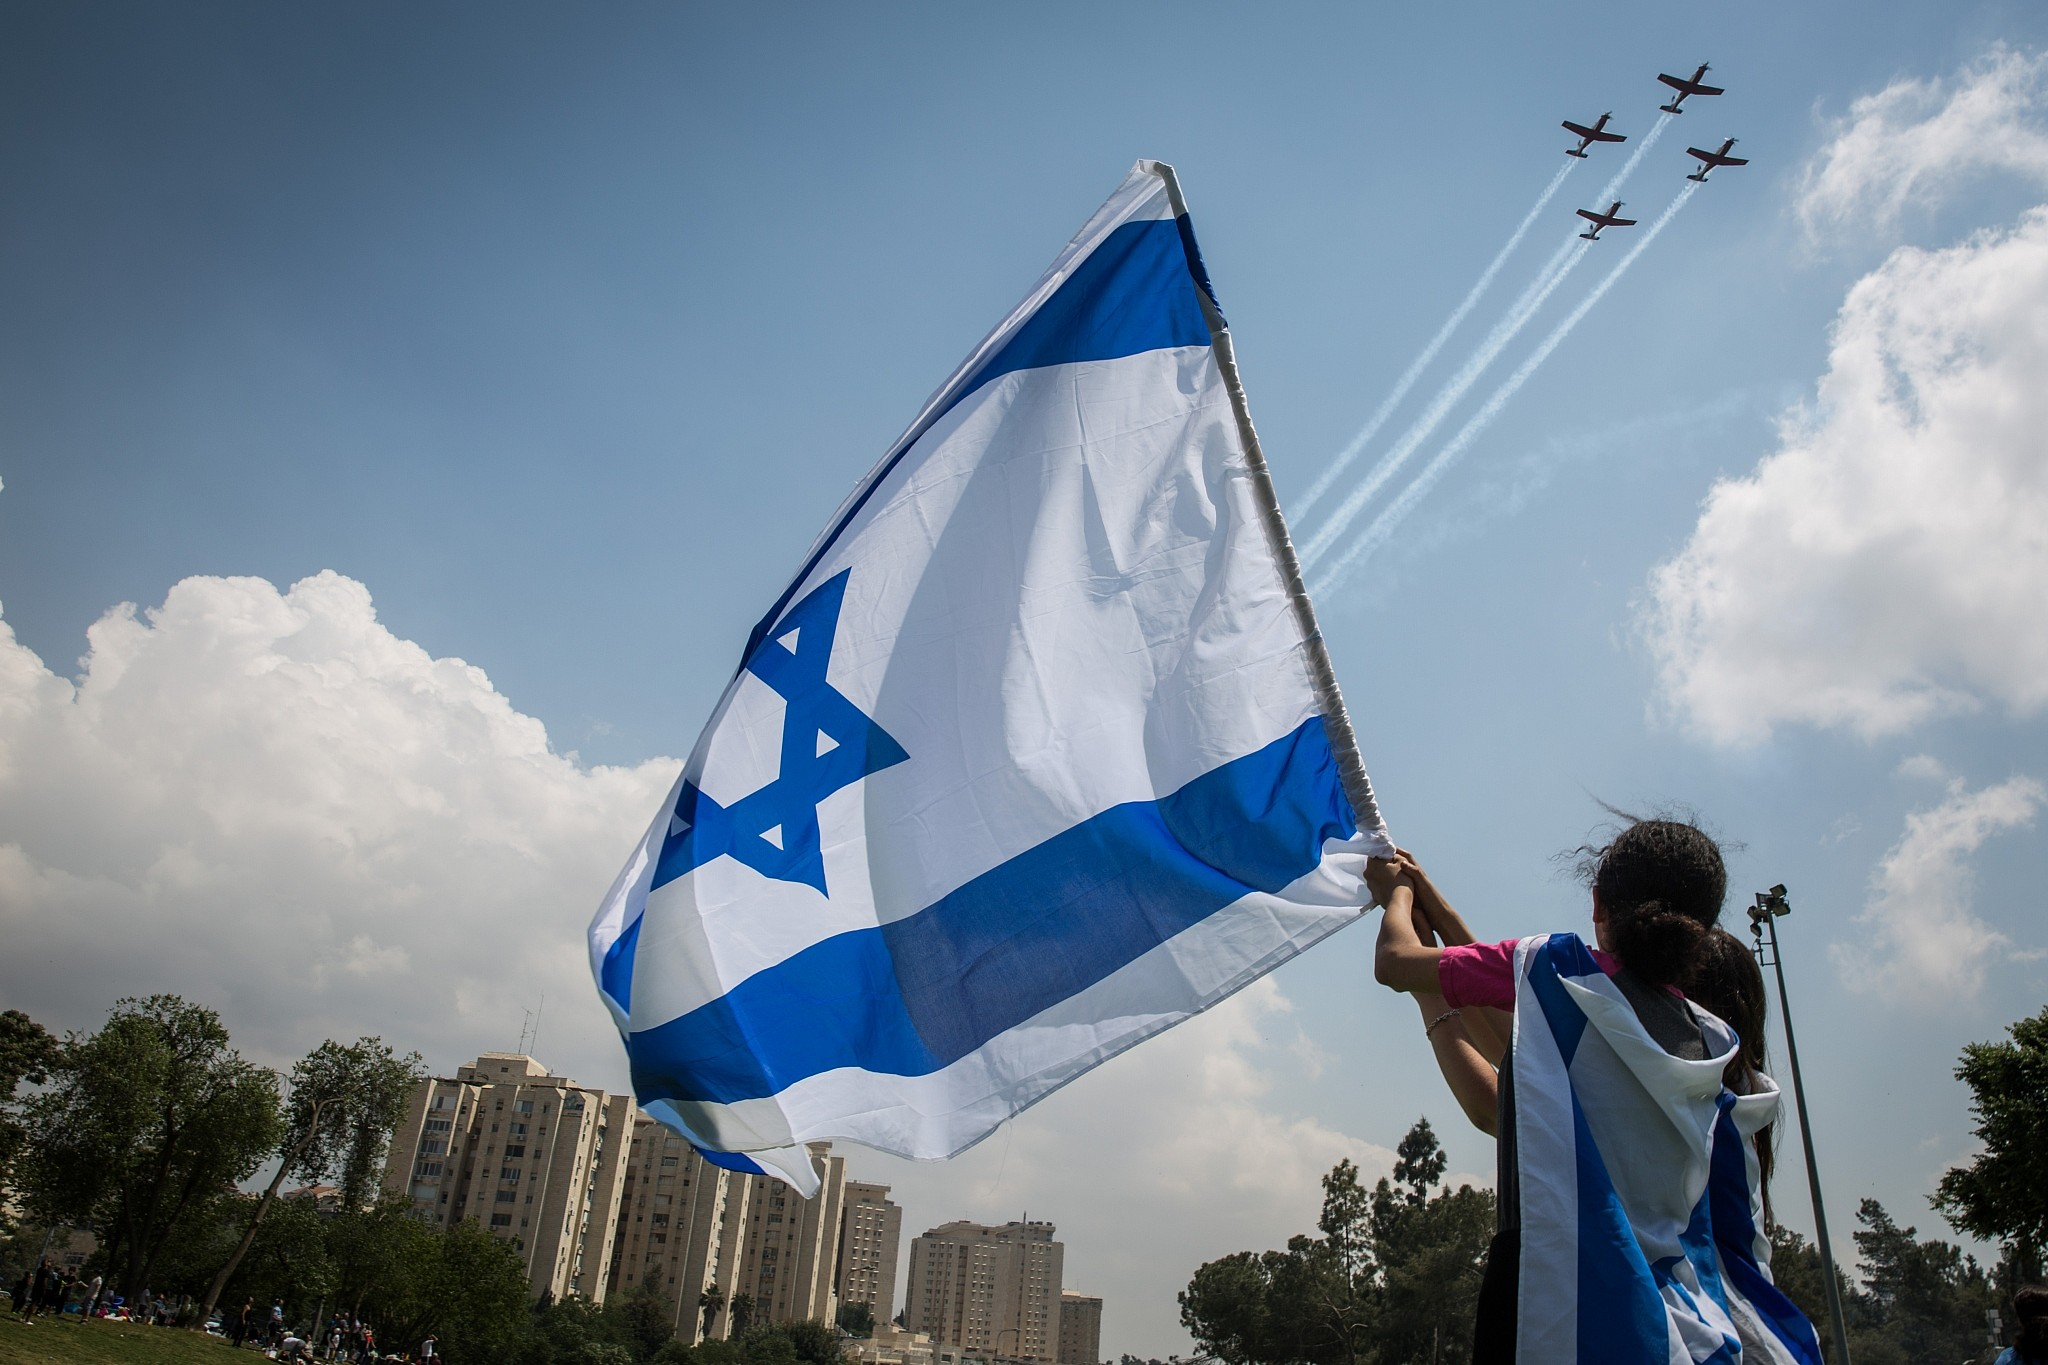 Israel marks 70th anniversary of its founding